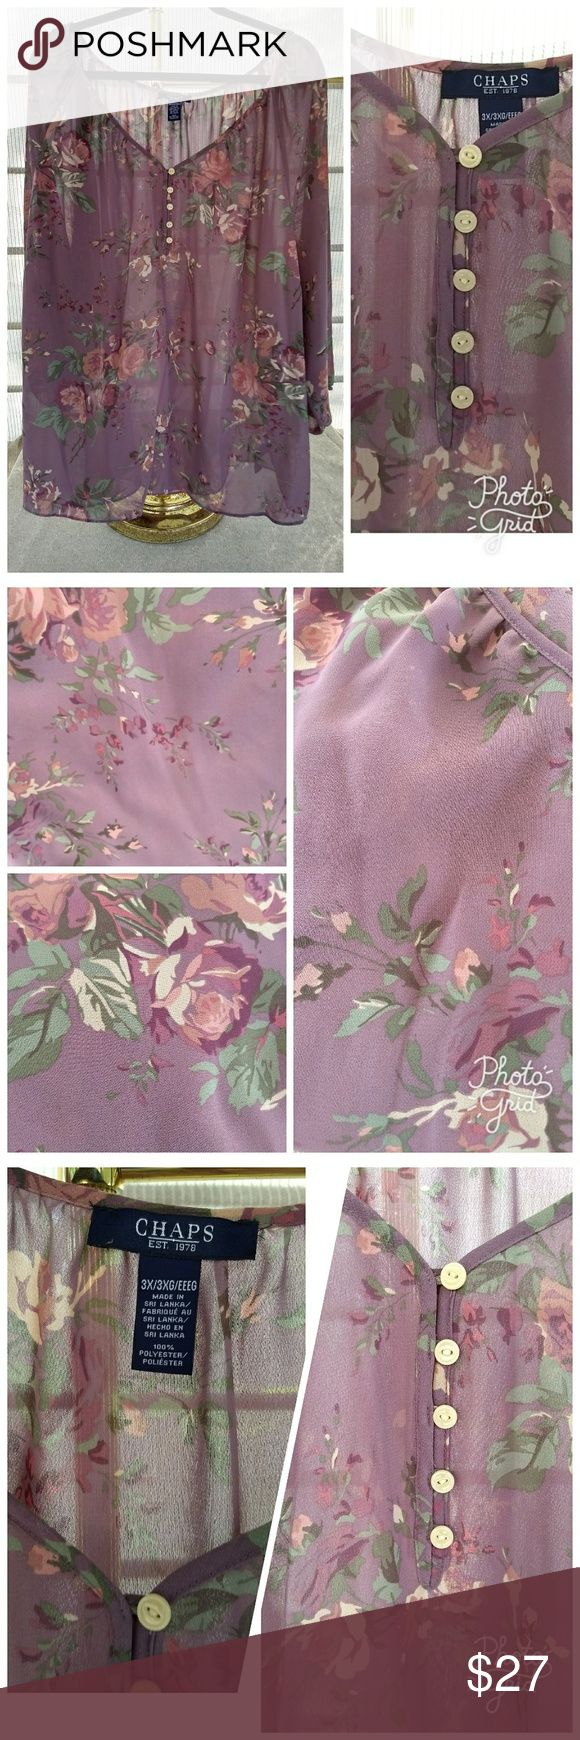 "Chaps Ralph Lauren 3X Boho Semi Sheer Top Chaps Dusty Rose/Plum semi-sheer floral 3x long sleeve blouse. Flowing easy-to-wear, easy-to-care top. Elastic at wrists. Approx 58"" at bust. Worn once, in excellent used condition. Chaps Tops Blouses"